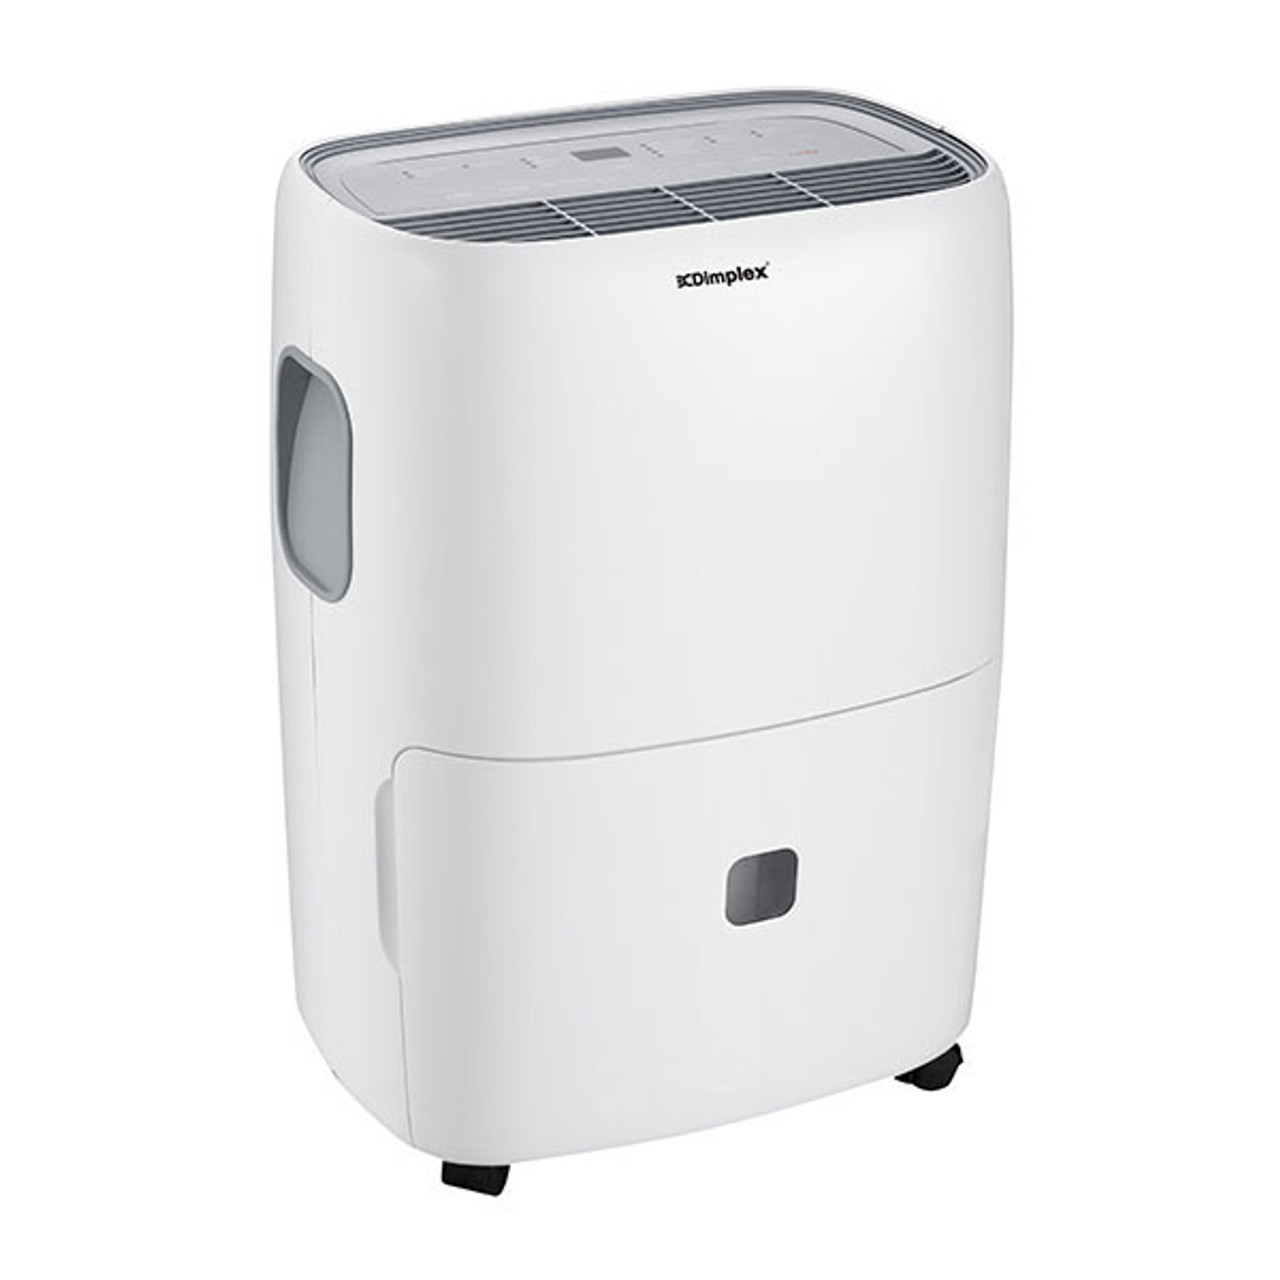 25L Dehumidifier with Electronic Controls